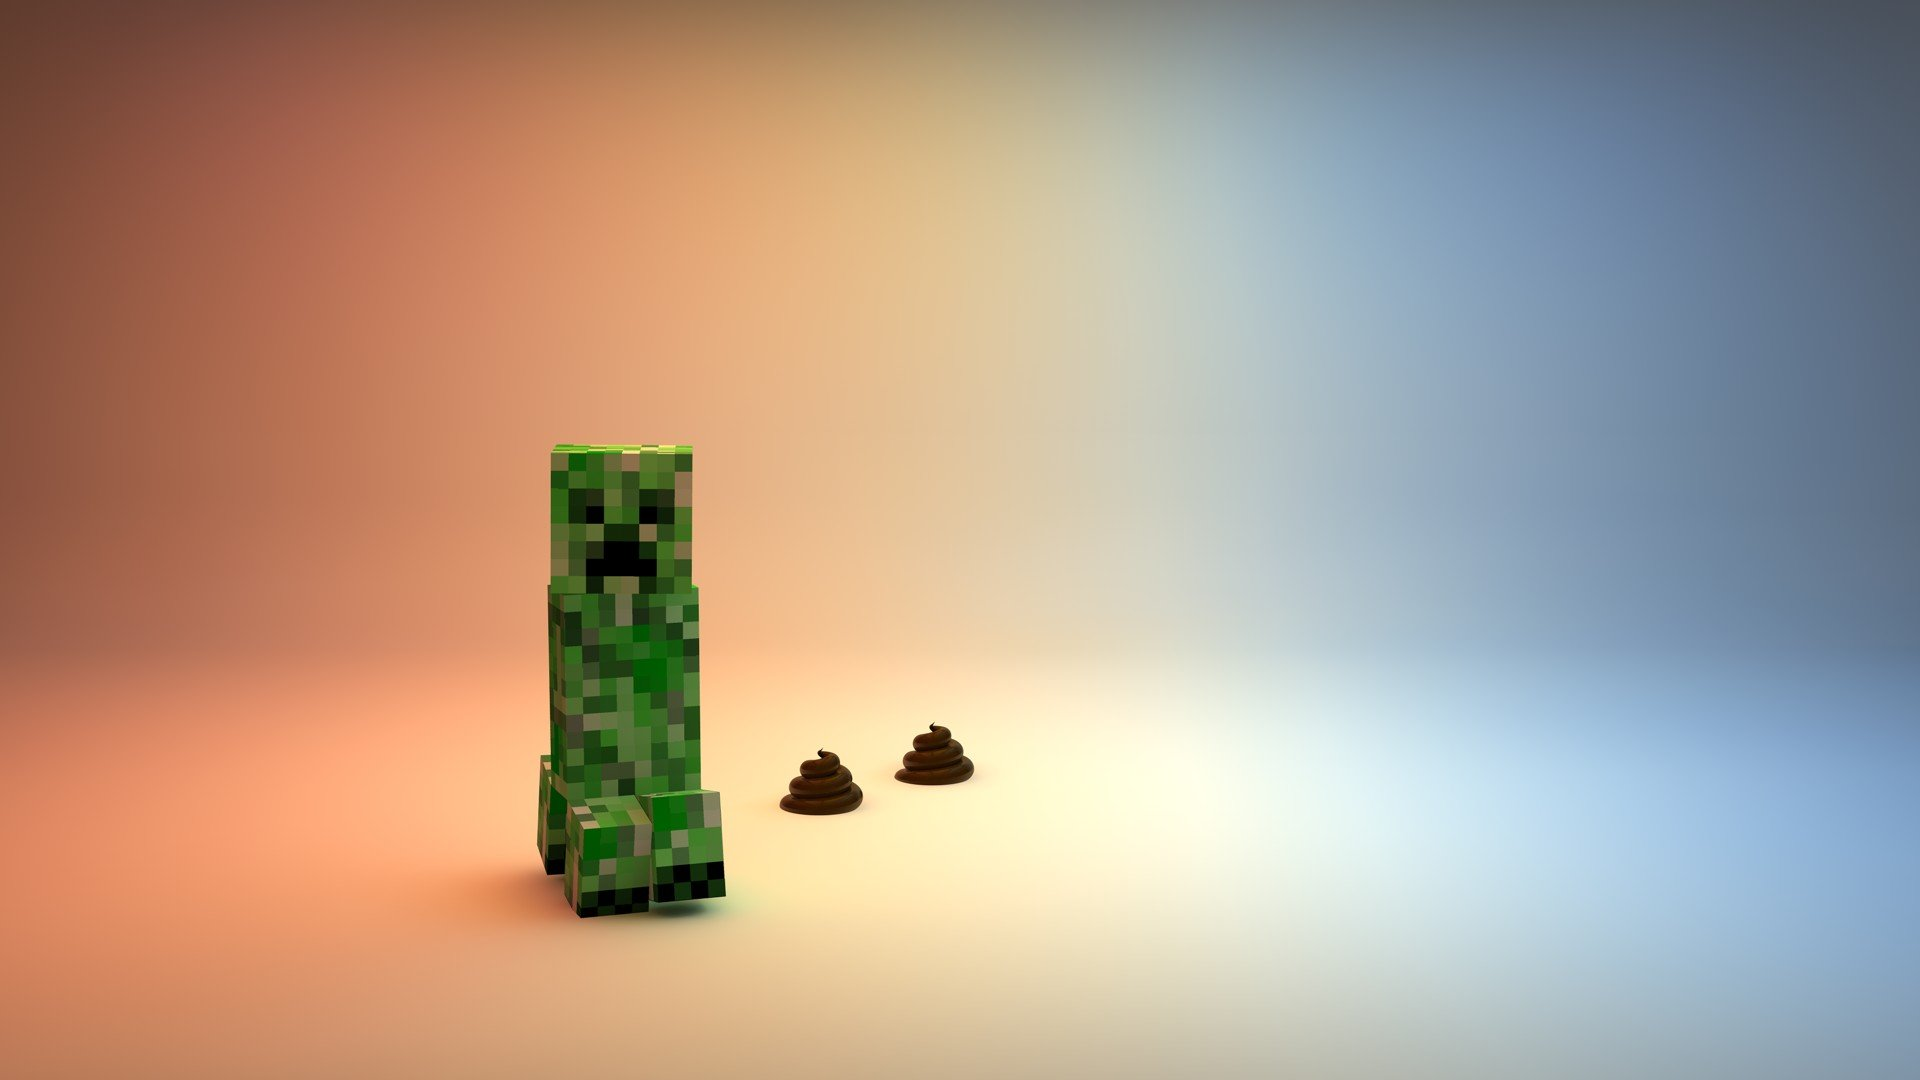 Creeper Minecraft Cool Pictures HD Wallpaper of Minecraft 1920x1080